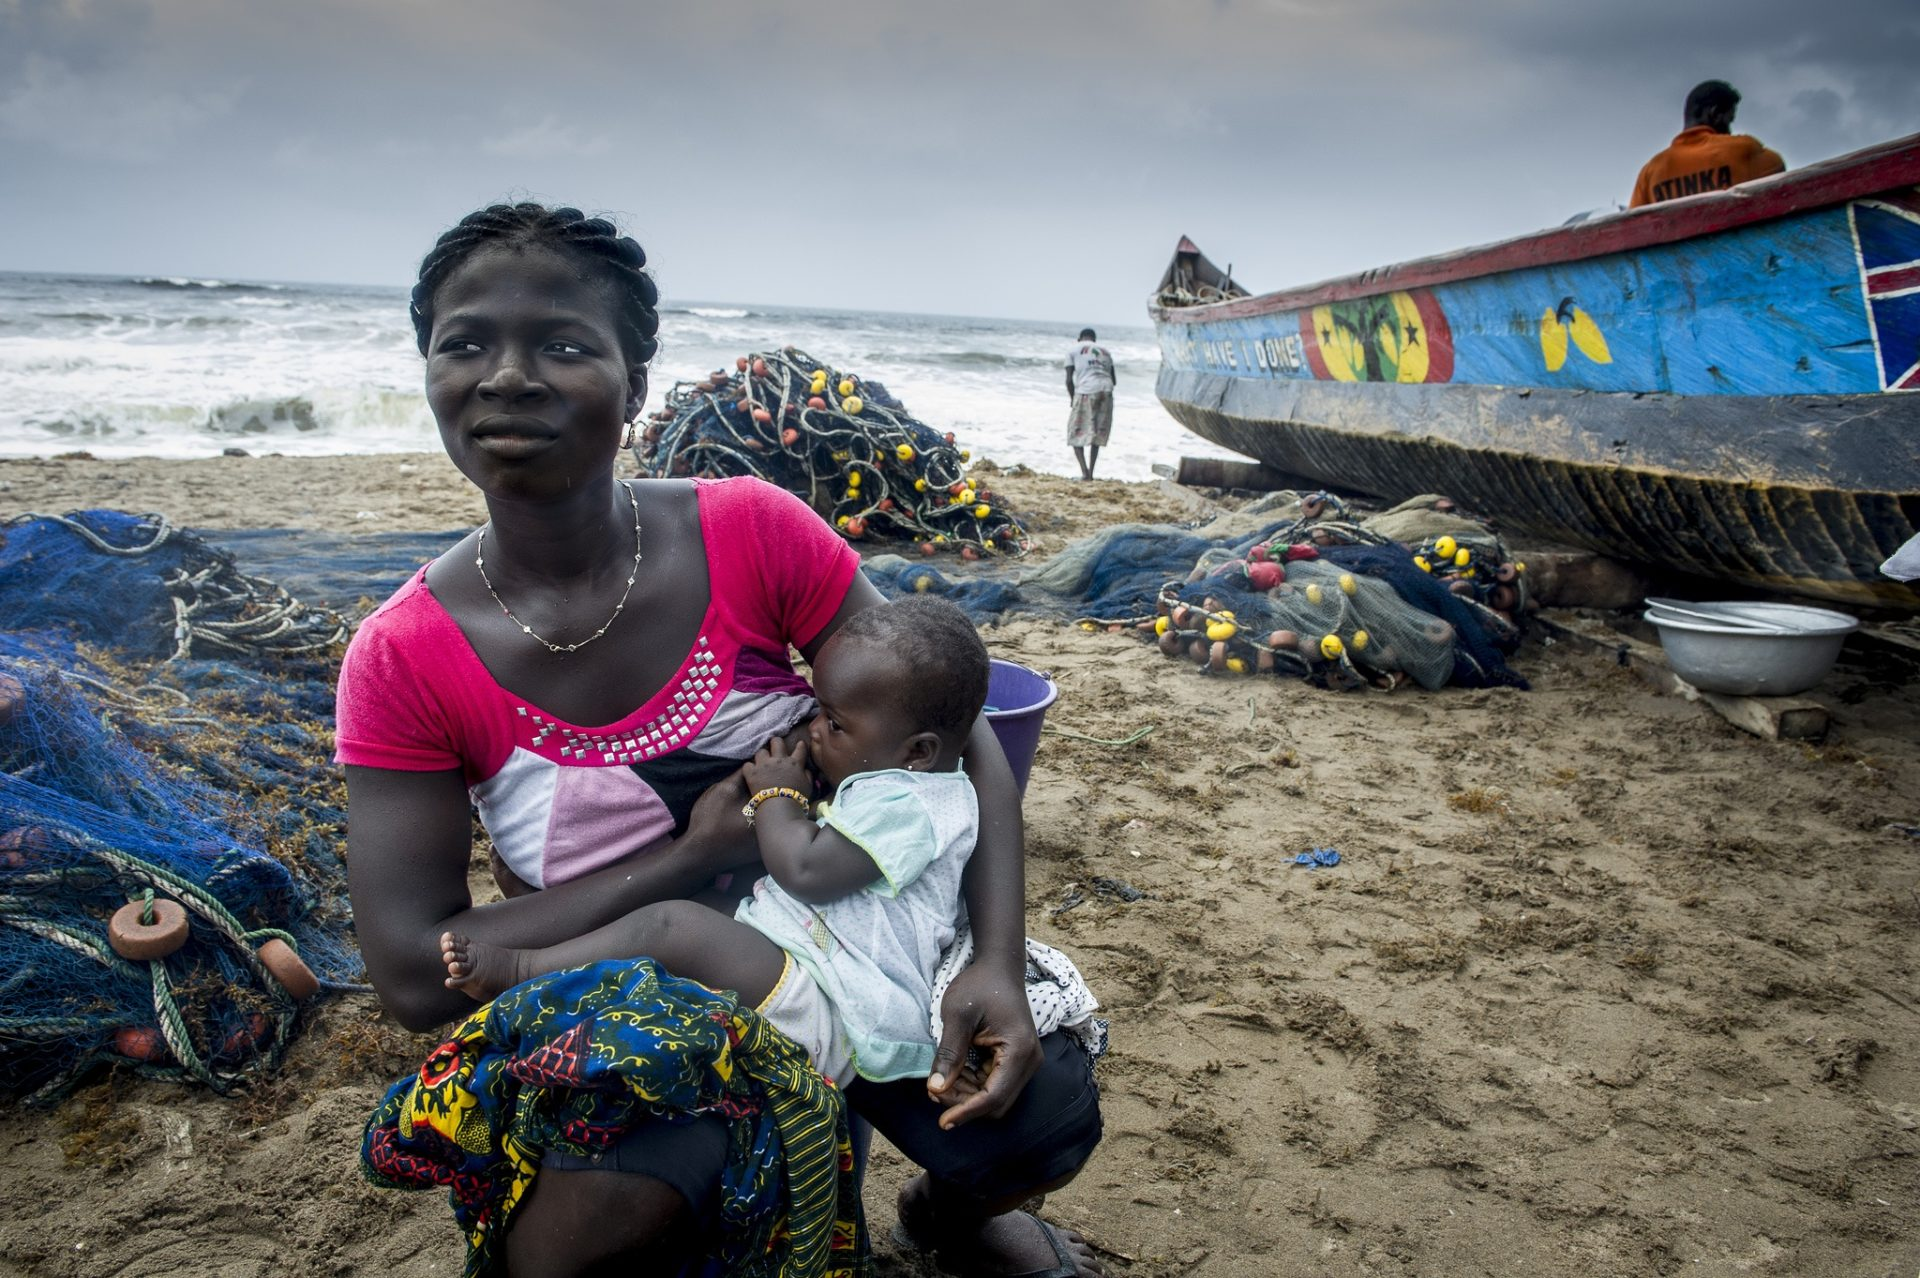 Women holds baby on the beach shore. Boat washed up ashore in the background.